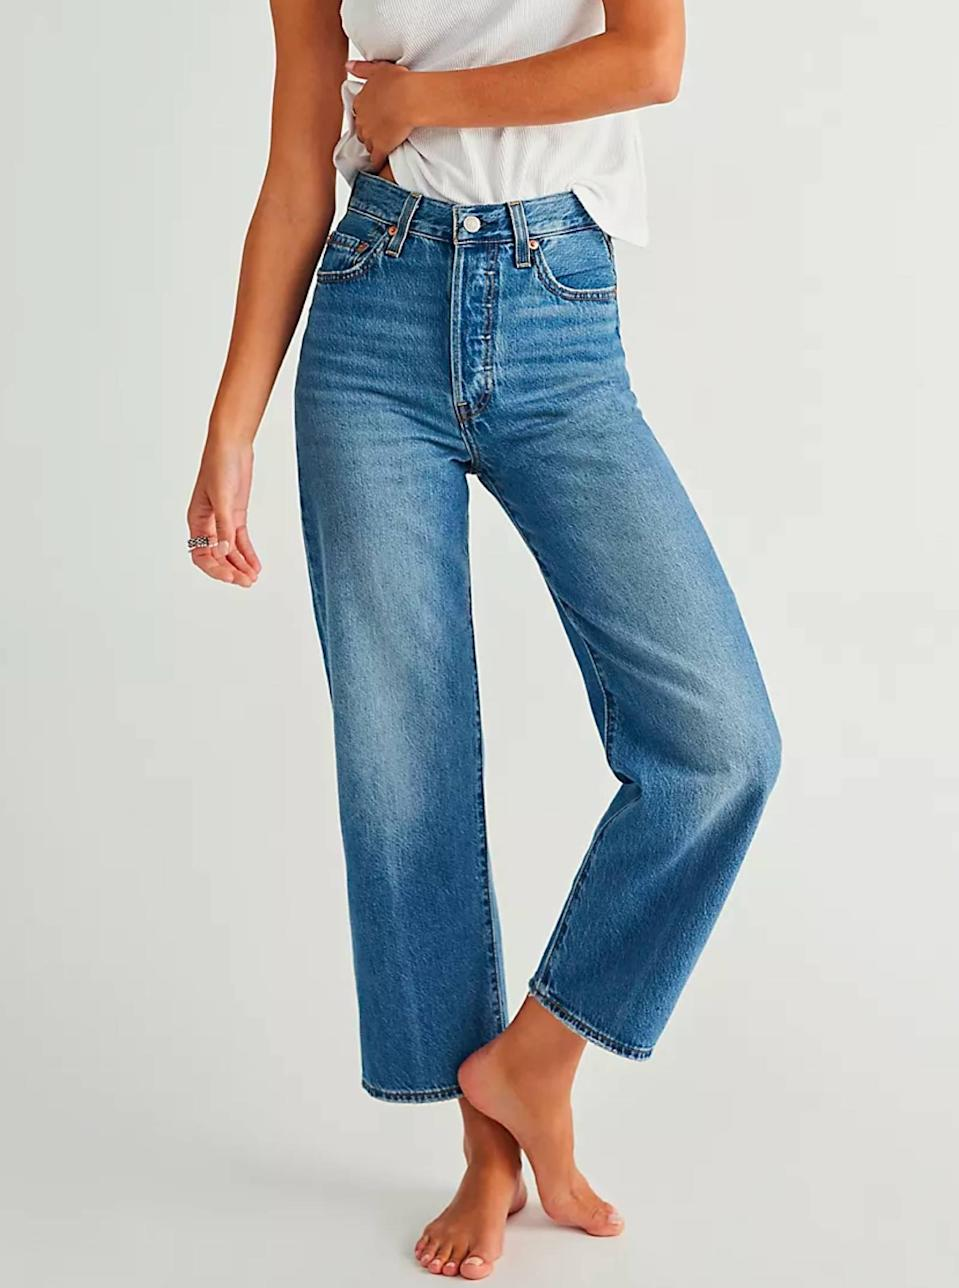 """$98, Free People. <a href=""""https://www.freepeople.com/shop/levis-ribcage-straight-ankle-jeans/?"""" rel=""""nofollow noopener"""" target=""""_blank"""" data-ylk=""""slk:Get it now!"""" class=""""link rapid-noclick-resp"""">Get it now!</a>"""